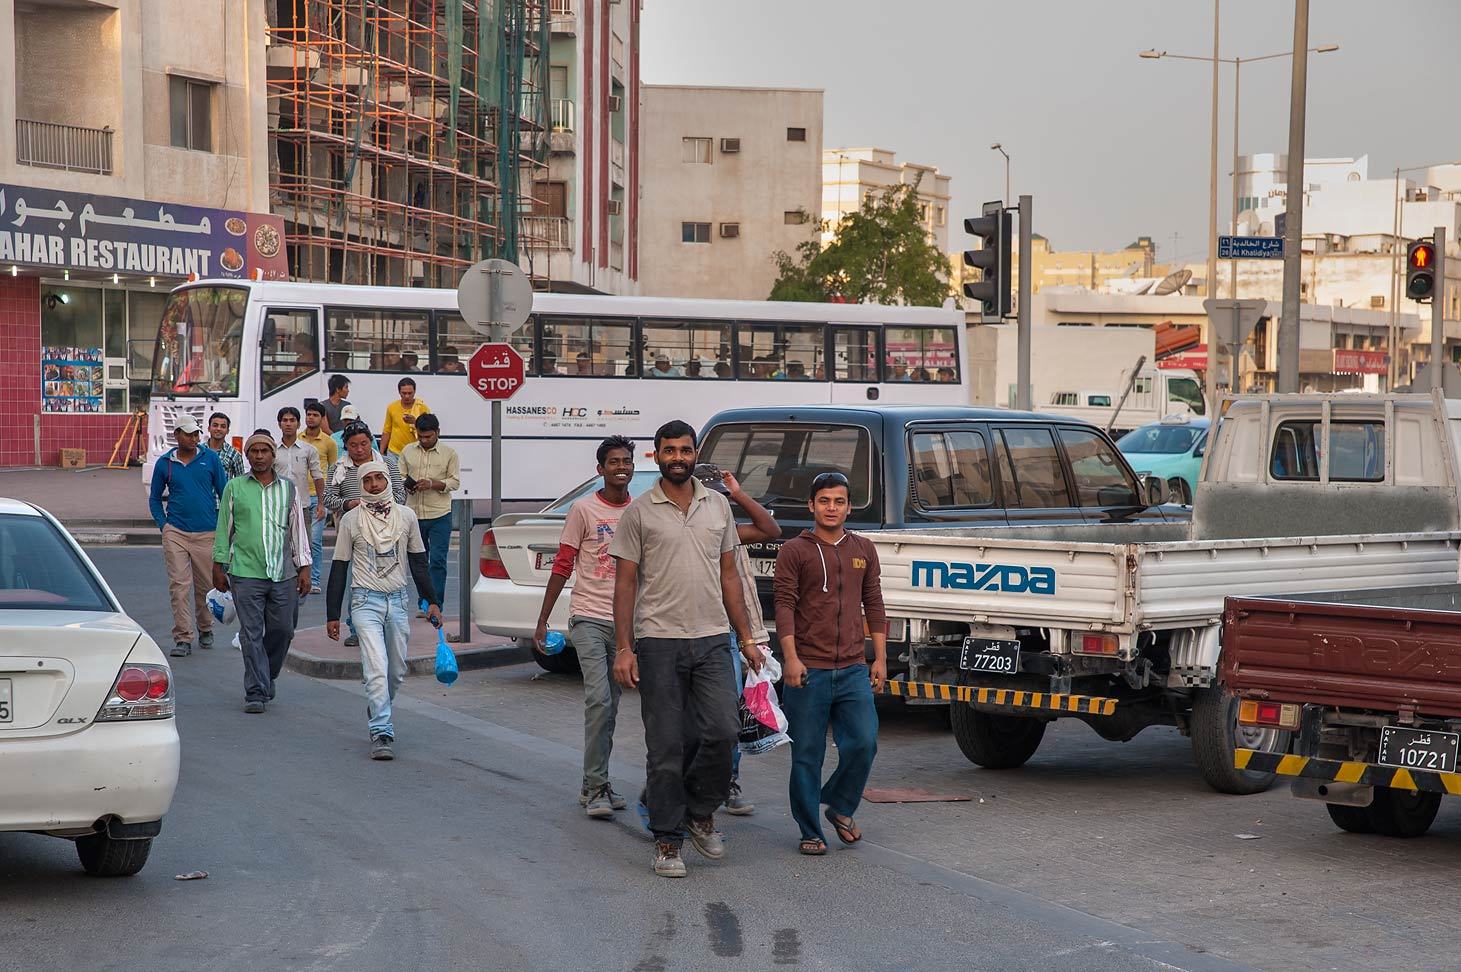 Workers on Al Kharaib St. in Najma area. Doha, Qatar